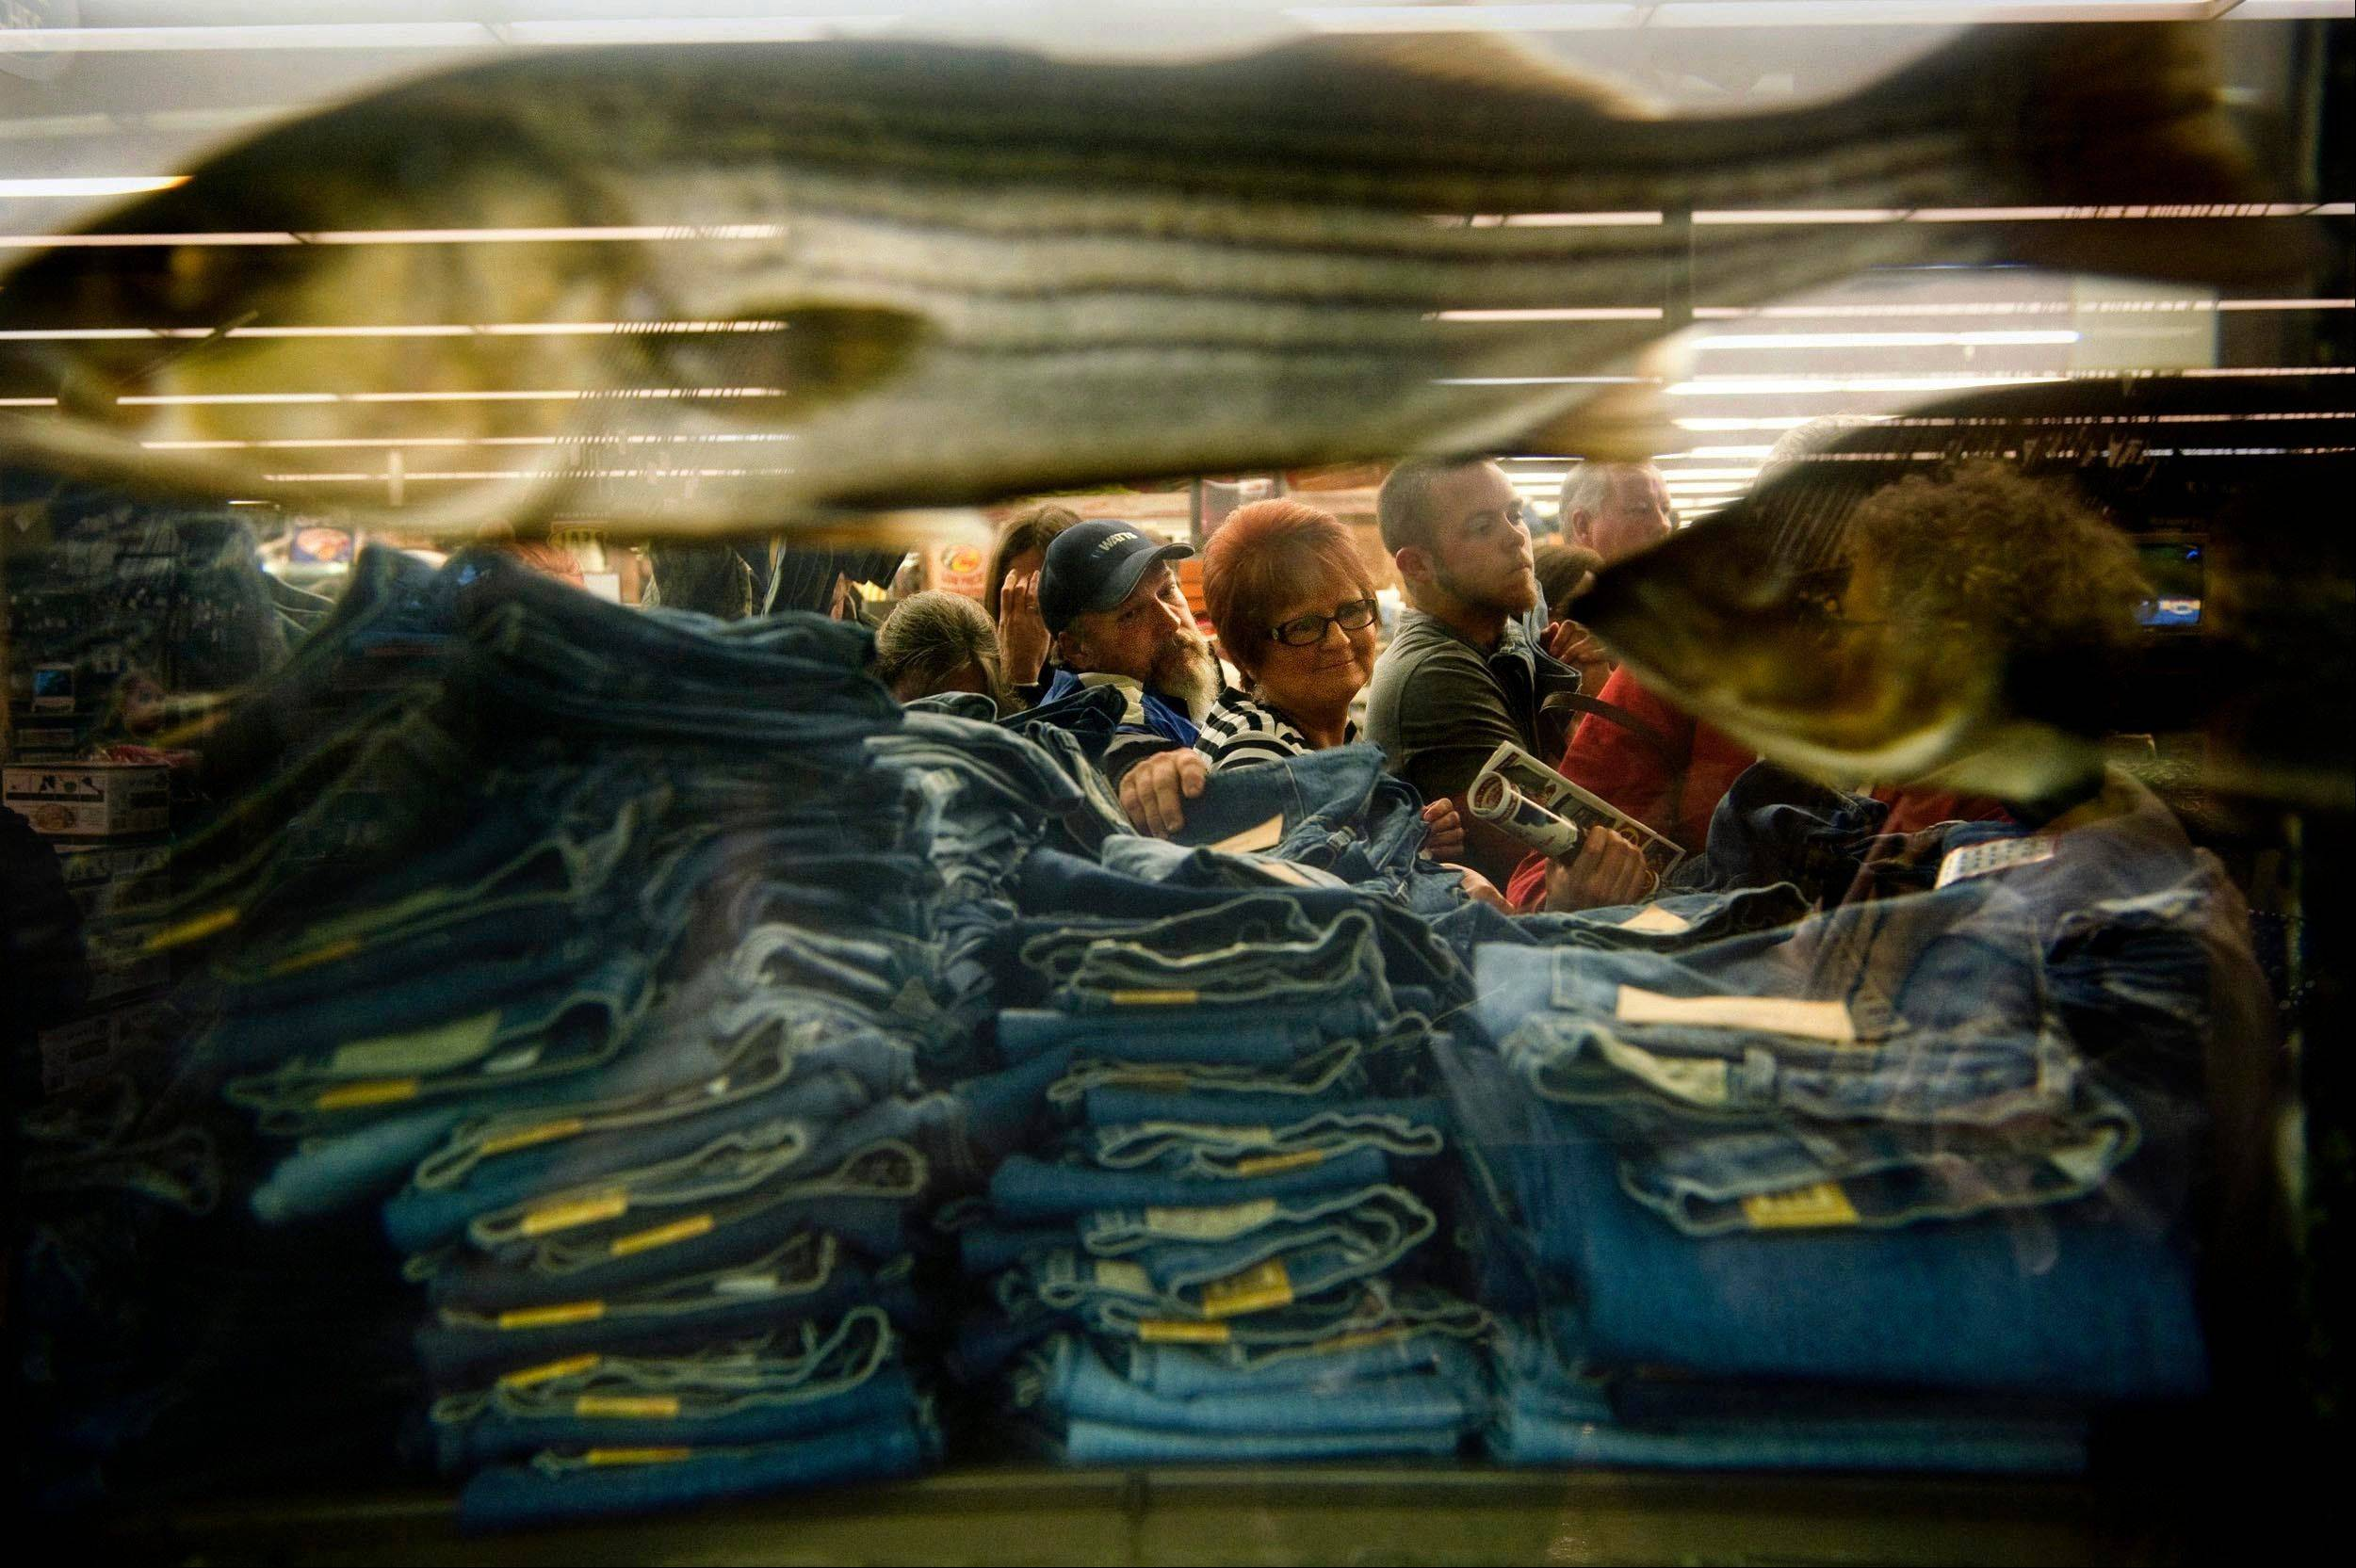 Shoppers pick through stacks of discounted jeans beside a giant aquarium inside Bass Pro Shops after the doors opened at 5 a.m., kicking off �Black Friday� and the holiday shopping season in Memphis, Tenn.